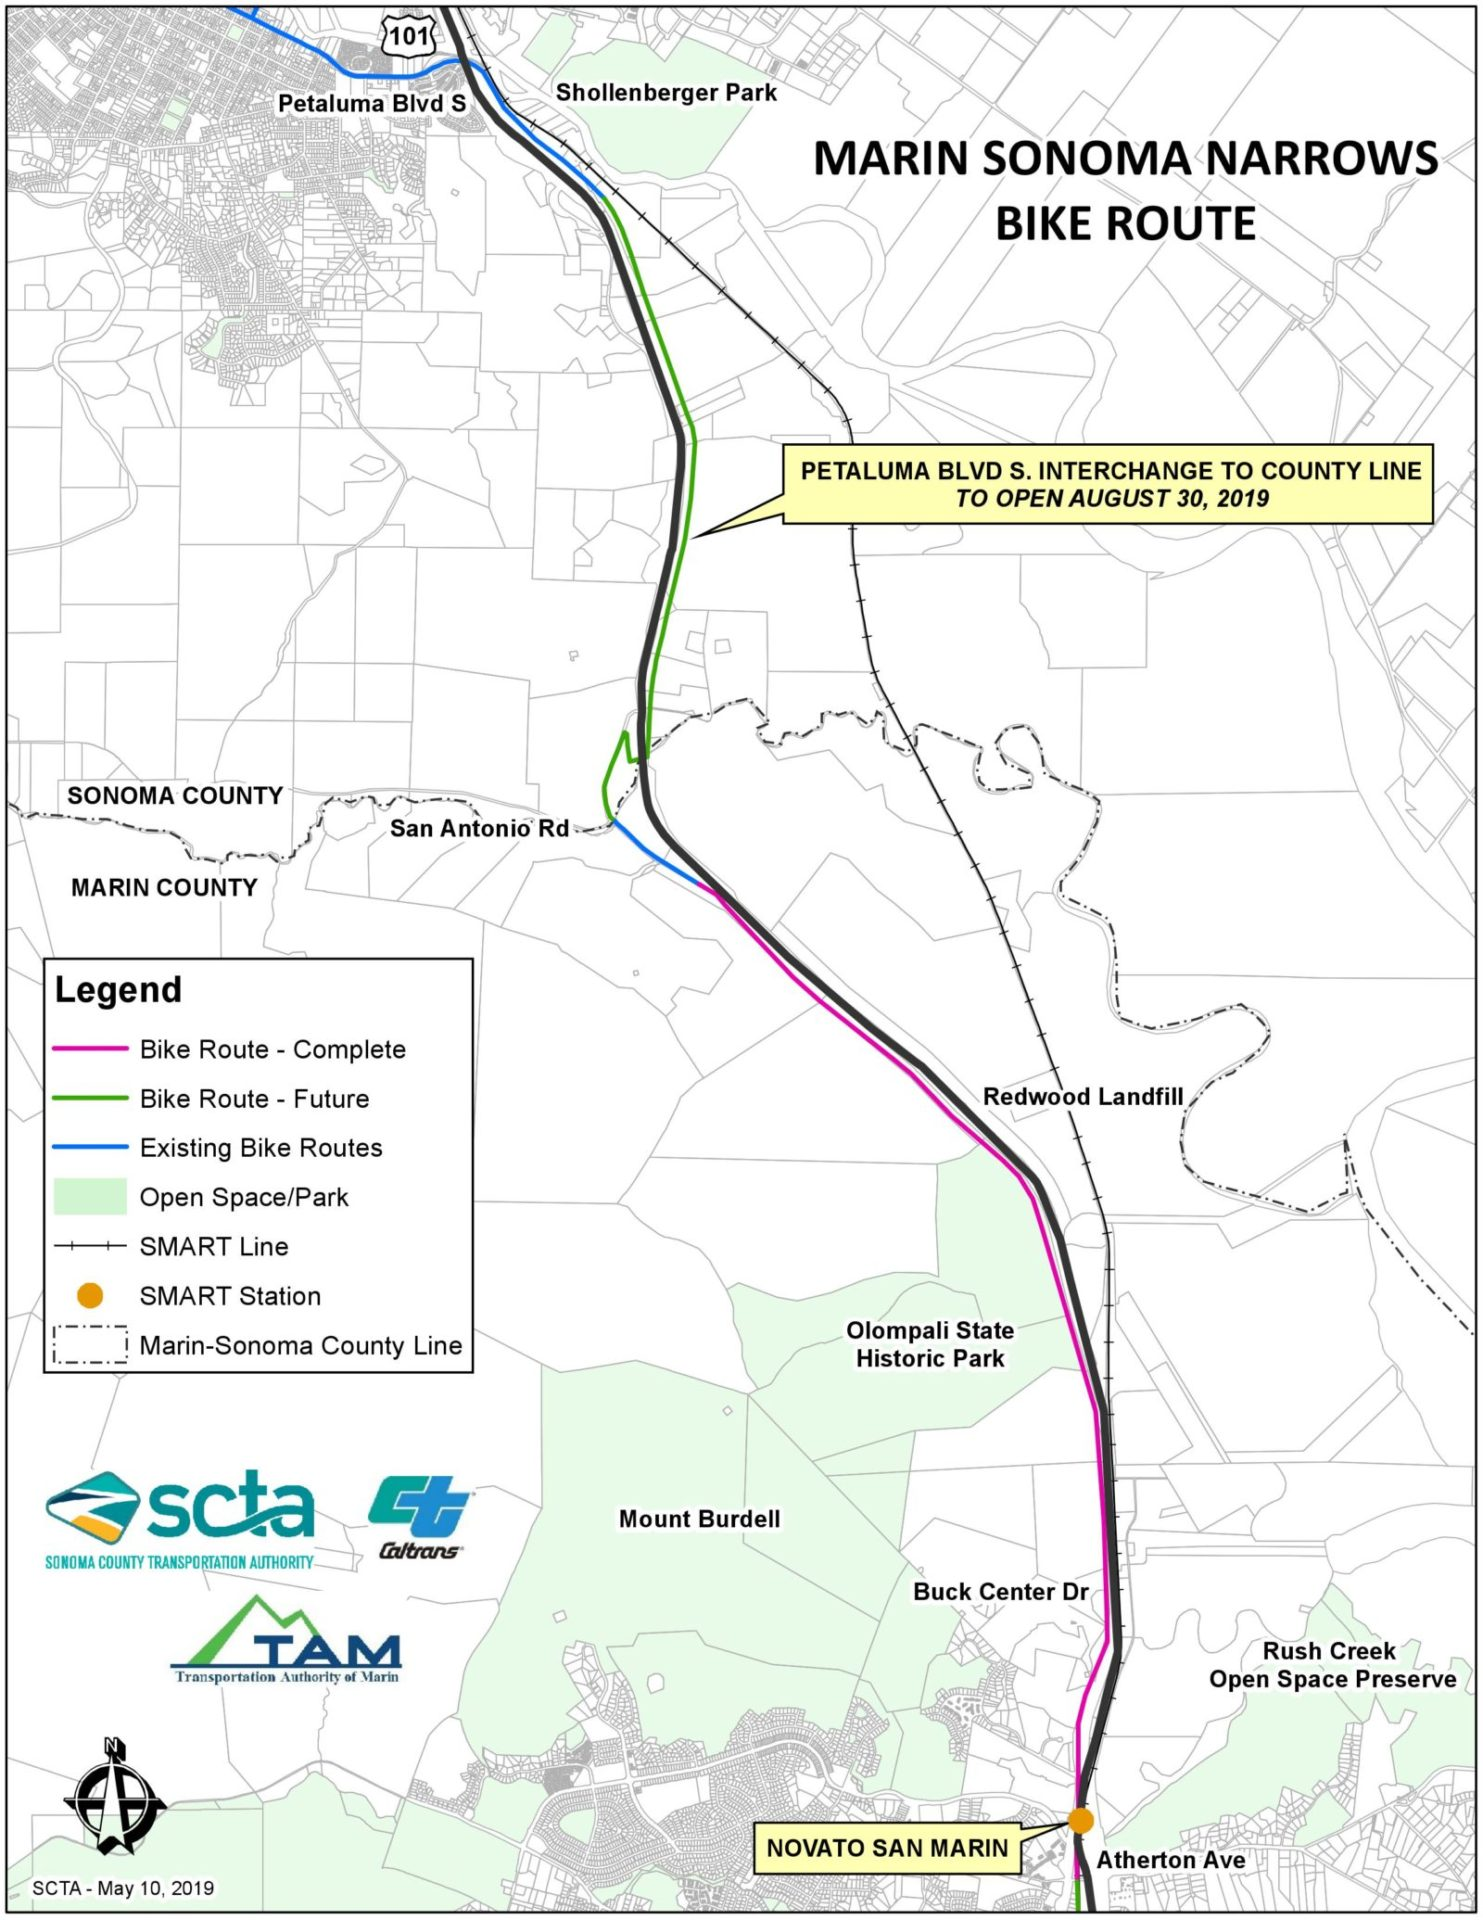 New Novato-Petaluma Route Now Open | MCBC on modot traffic map, txdot traffic map, san francisco traffic map, faa traffic map, ohio dot traffic map, seattle traffic map, wsdot traffic map,